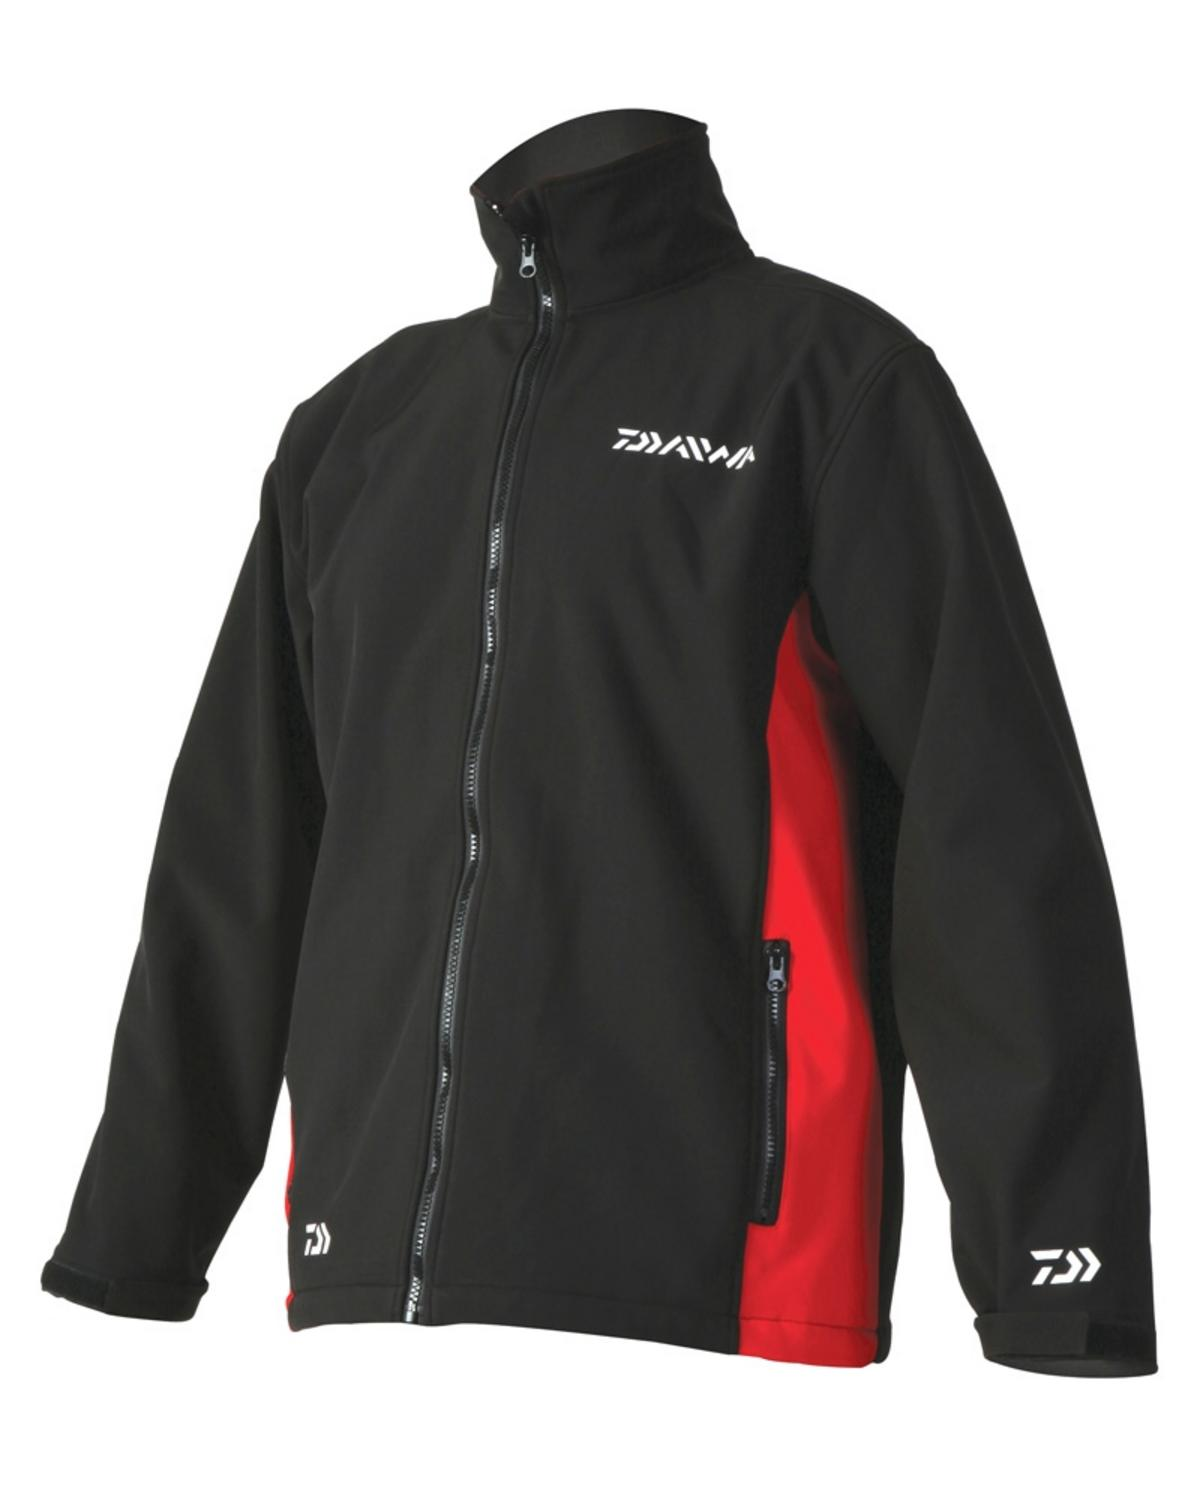 DAIWA SOFTSHELL JACKET RED or BLACK